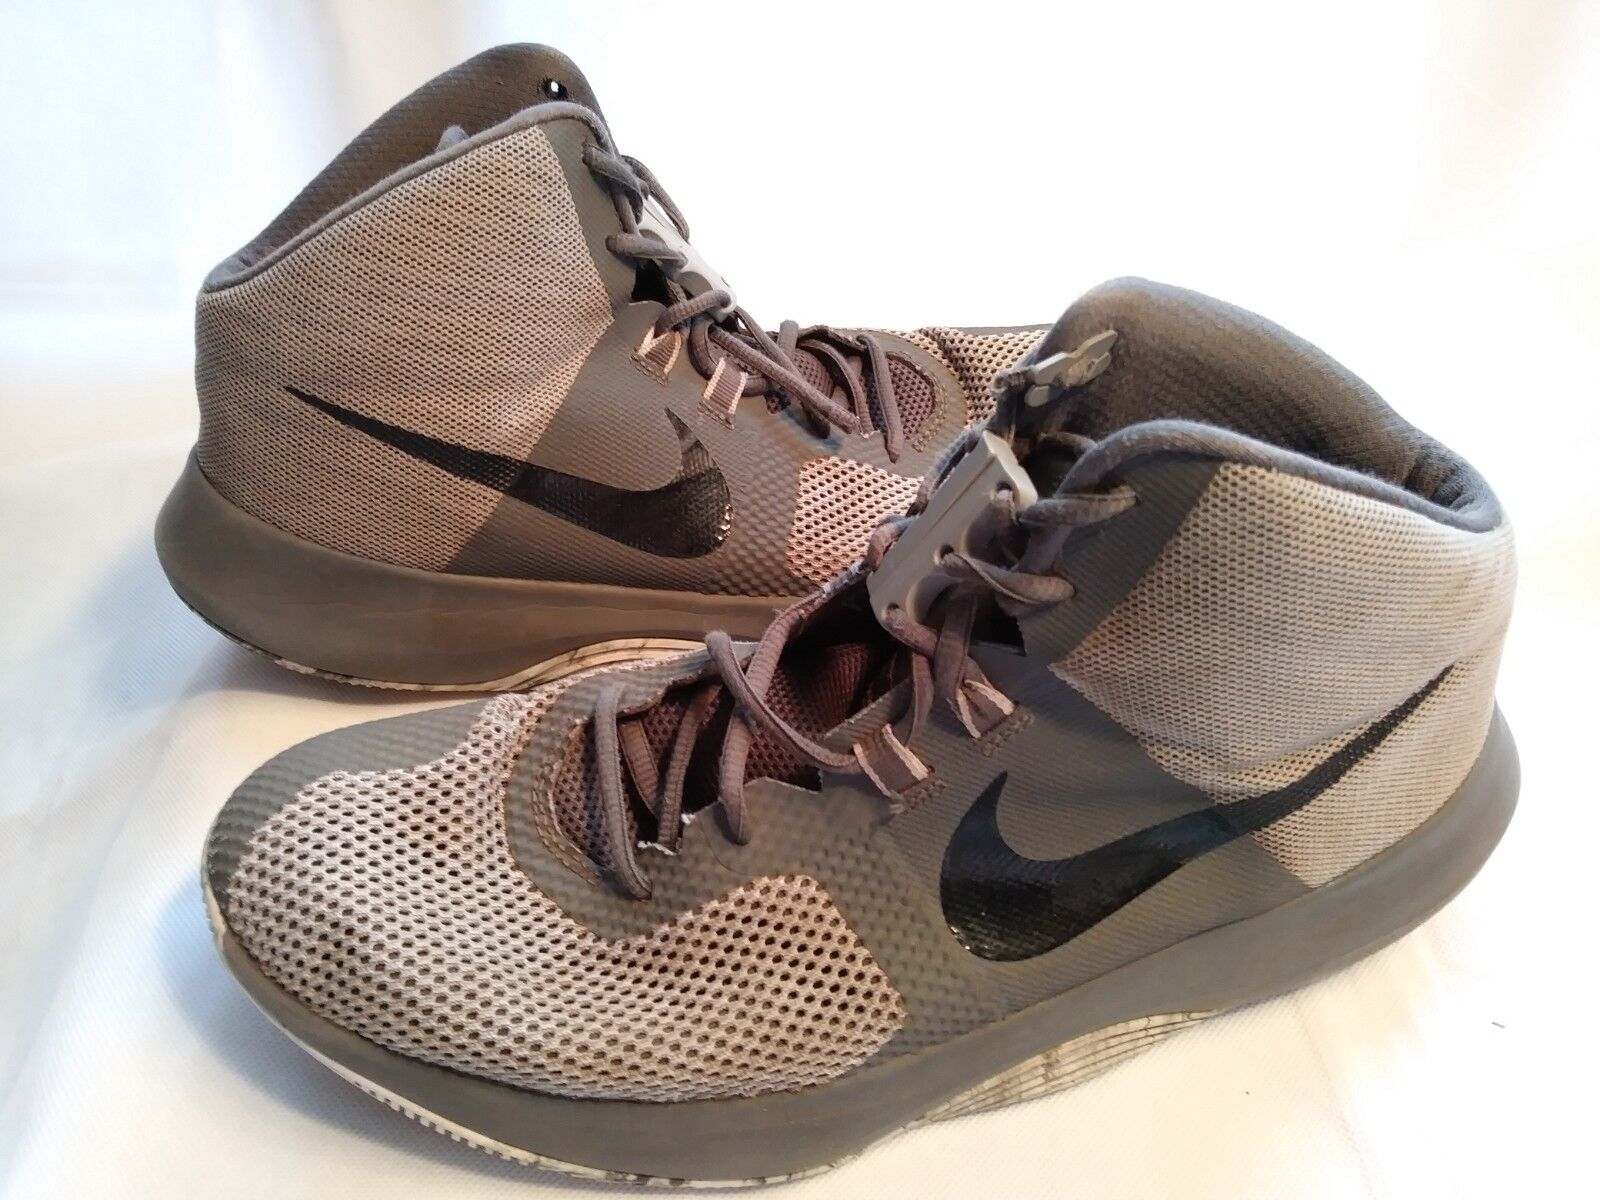 94cea23e0f3 Nike Air Precision Mens Basketball Shoes Size 11 Gray W Zubits Magnetic  Closures for sale online